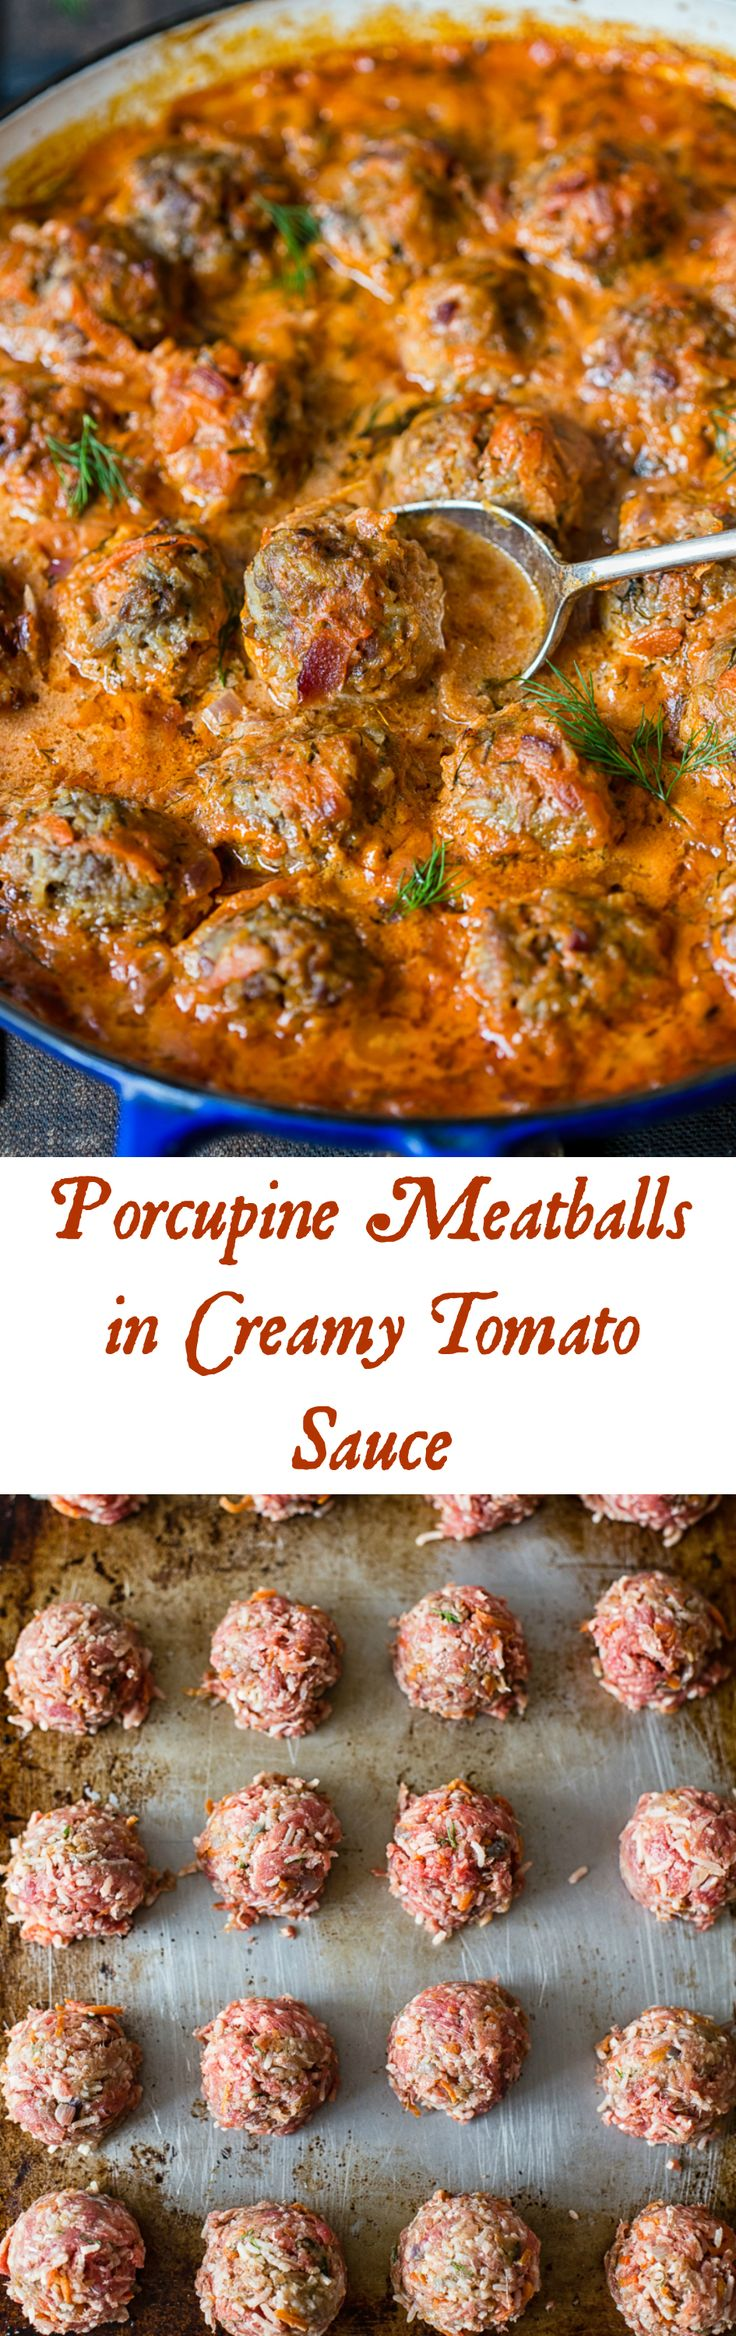 These porcupine meatballs baked in rich sour cream and tomato sauce are a perfect mix of deliciousness and nostalgia! Your family will love them!